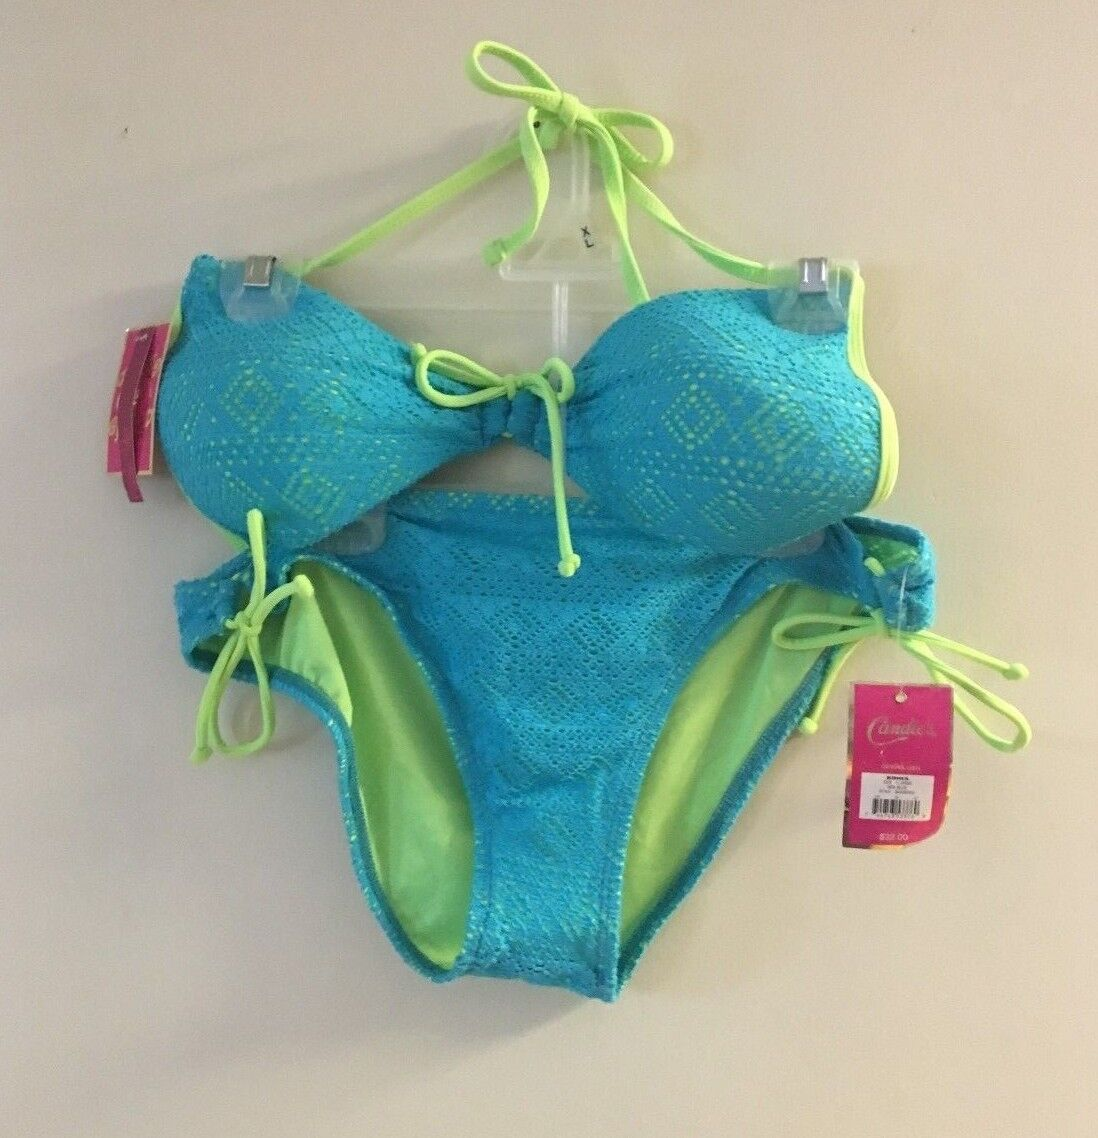 CANDIE'S TWO PIECE SEA blueE BATHING SUIT JR EXTRA LARGE NWT